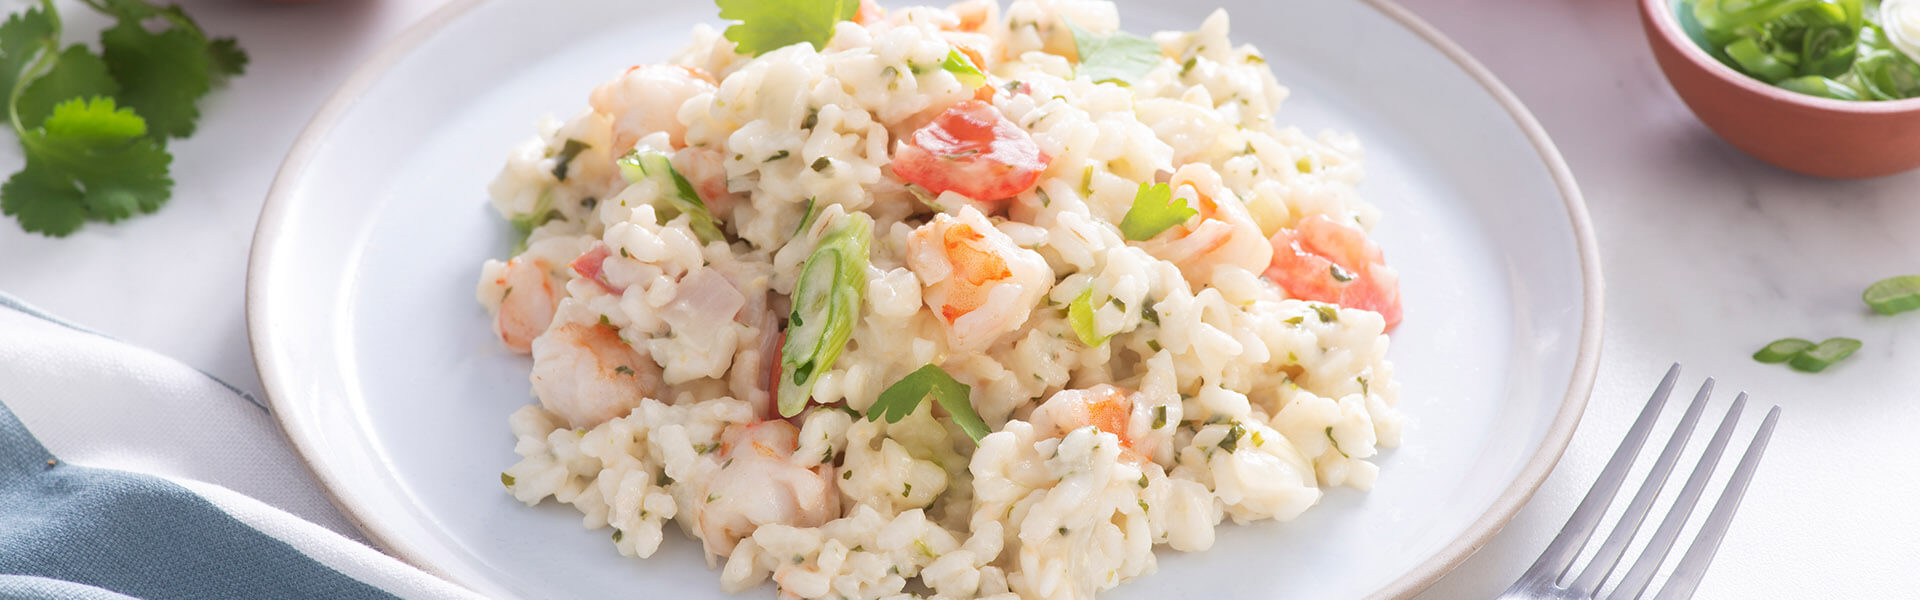 Creamy Risotto with Cilantro & Shrimp